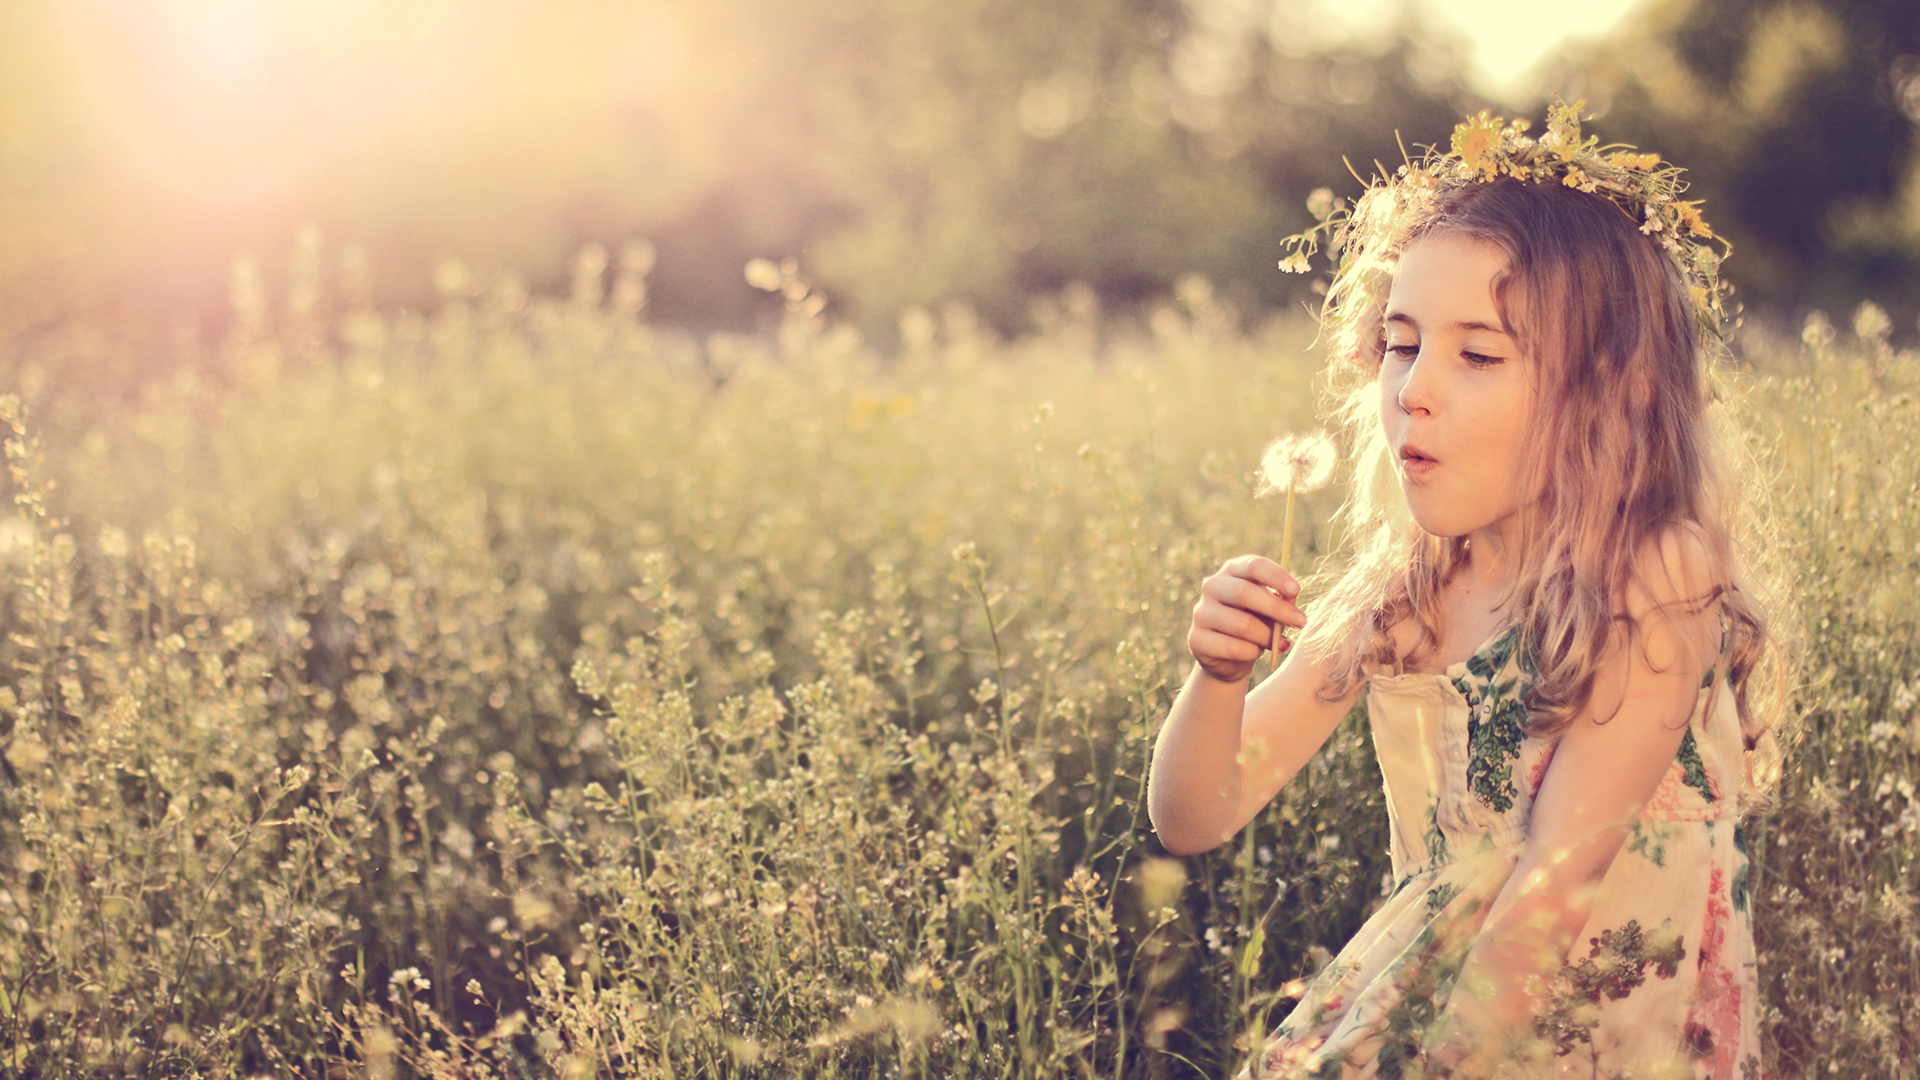 Girl with a wreath of flowers sitting in a meadow holding a dandelion